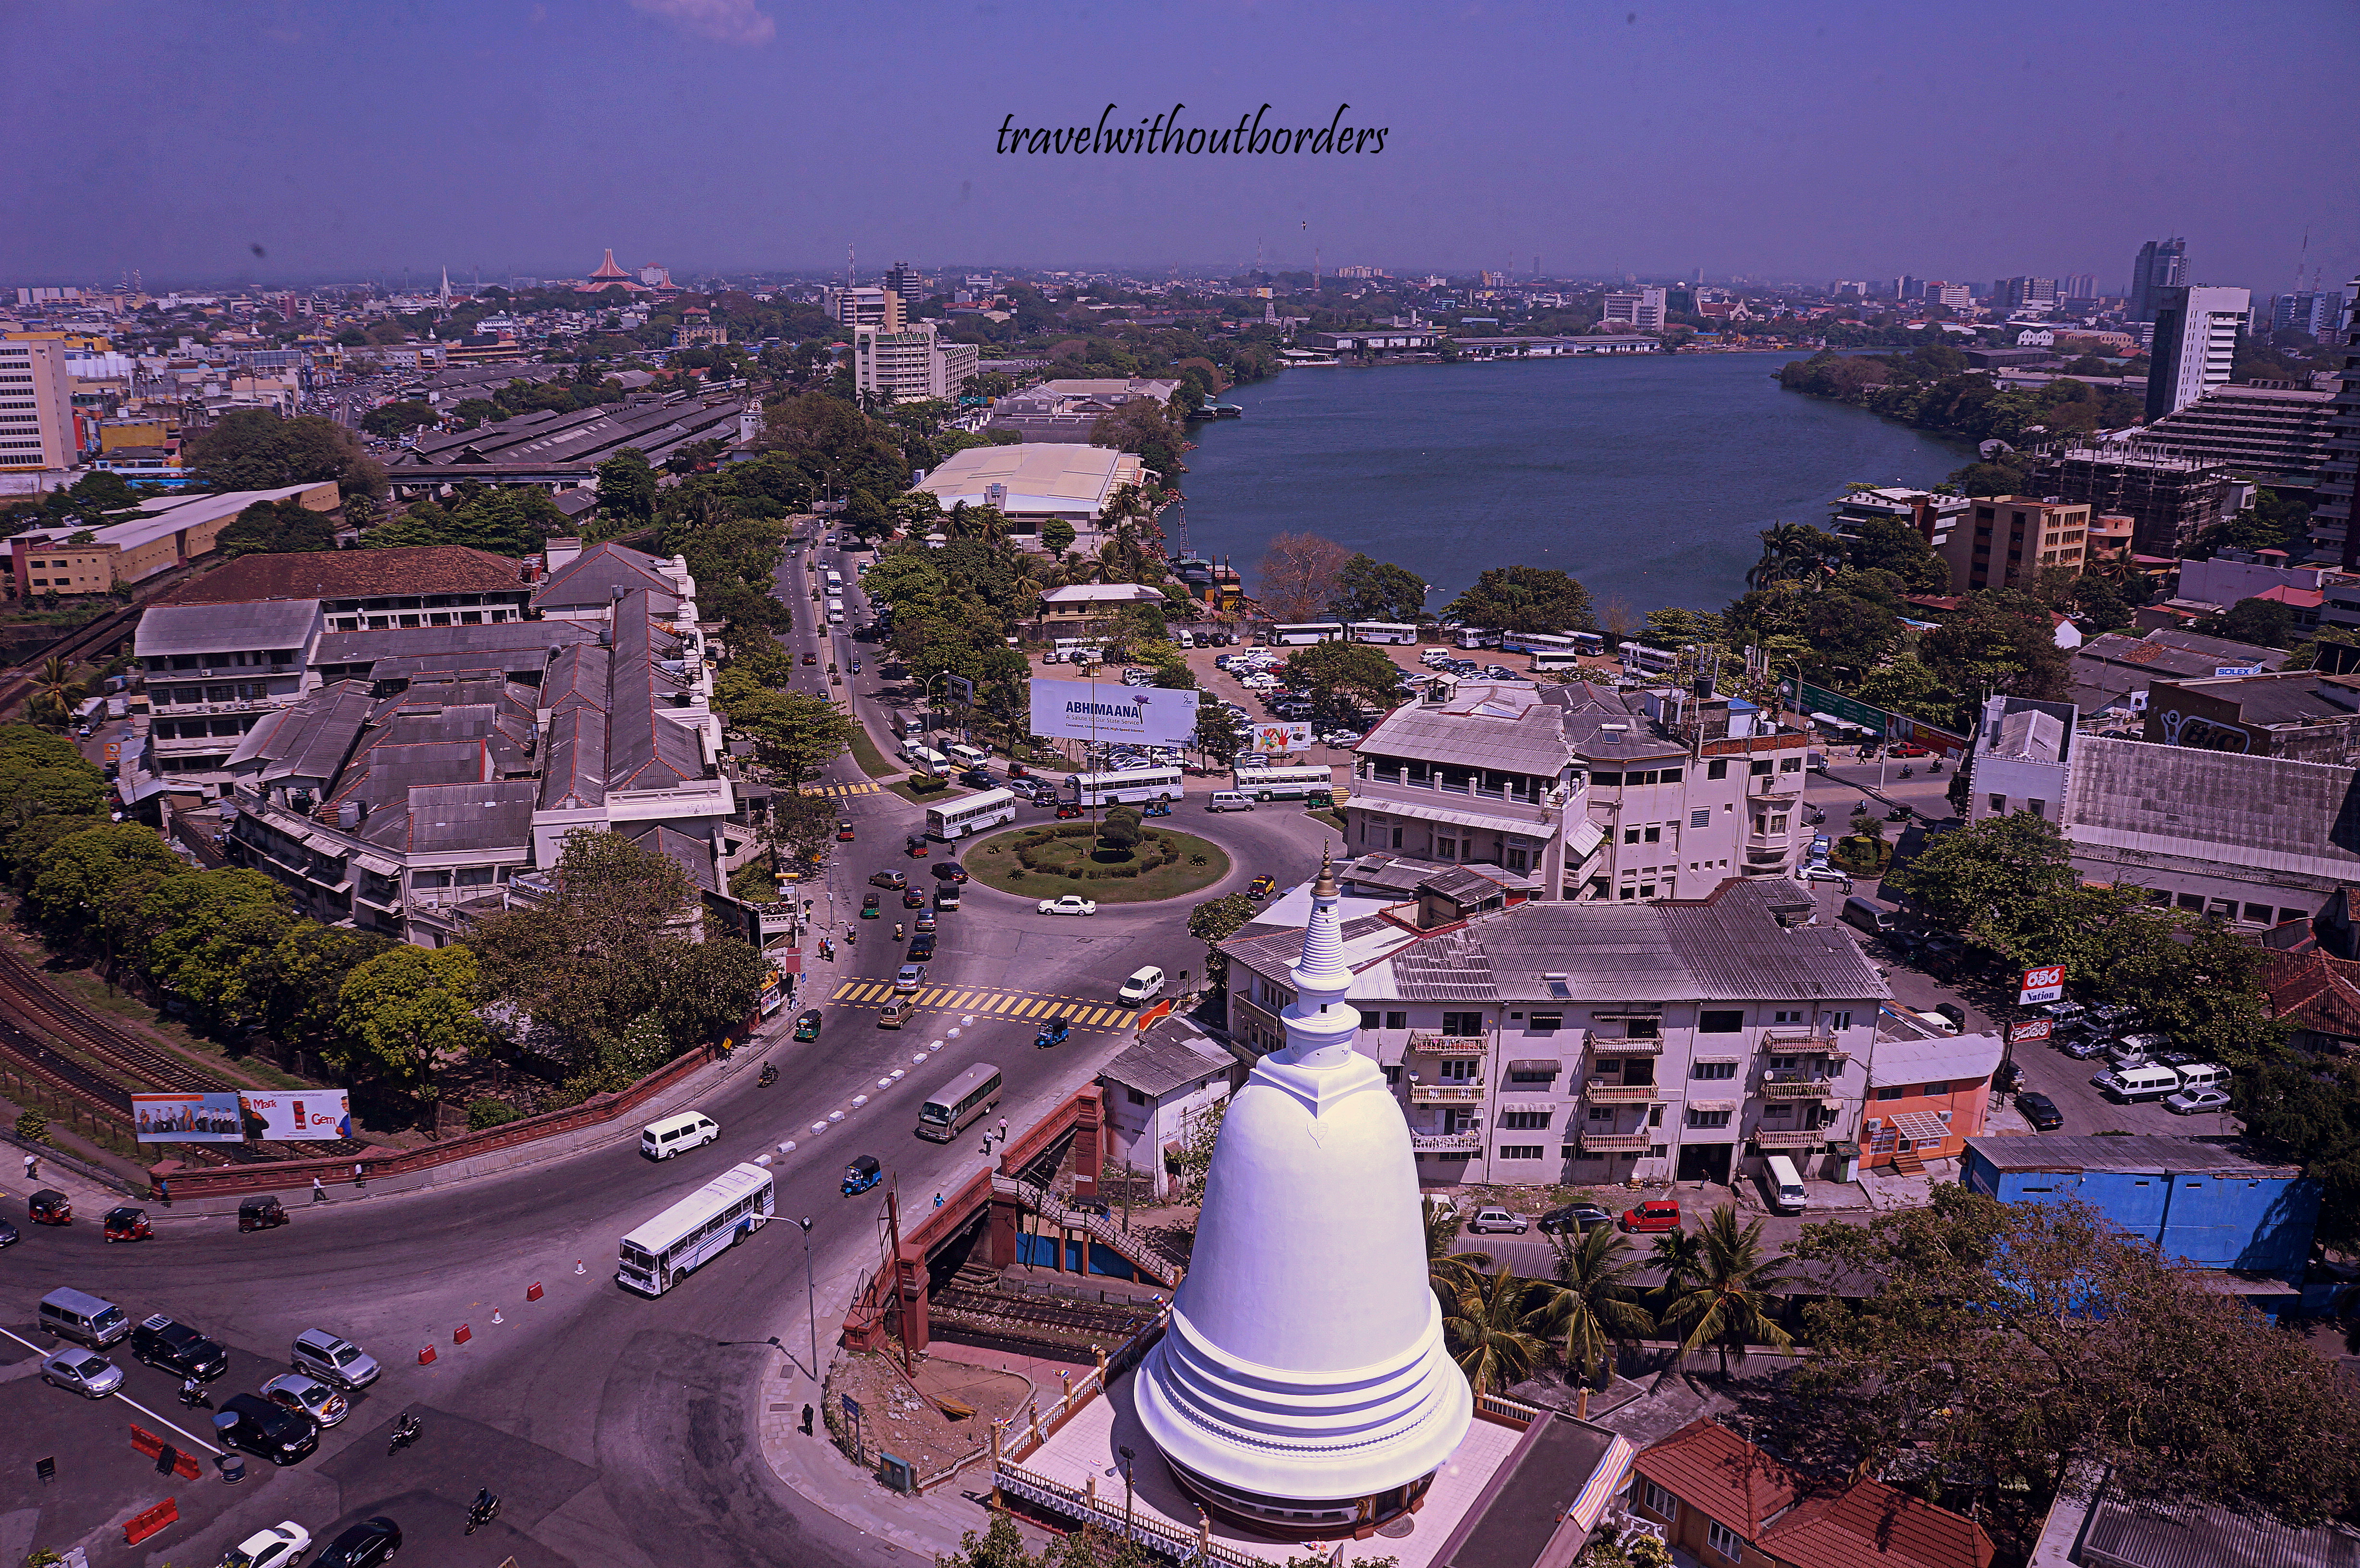 Colombo: Care for Tea or Crab?  